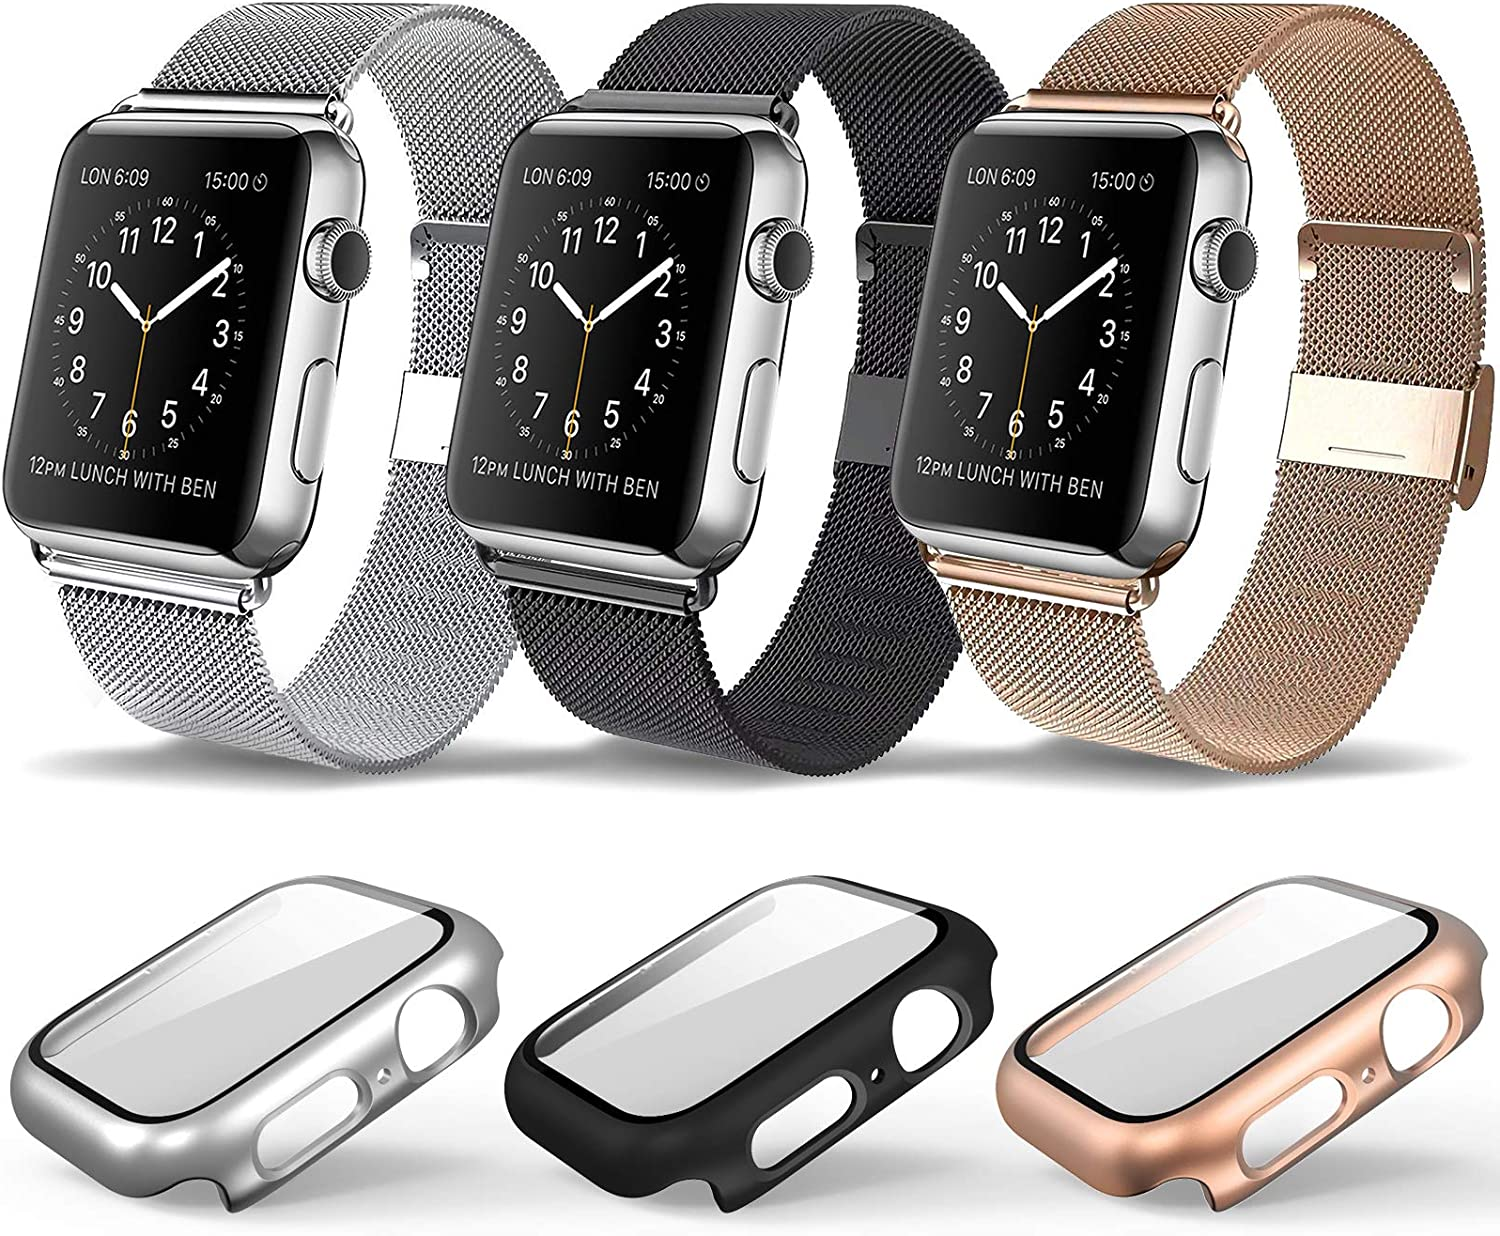 3 Pack Magnetic iWatch Bands with Case Compatible for Apple Watch Band Milanese Loop for Apple Watch Band 38mm 40mm 42mm 44mm for Women Men, Replacement Accessories Wristband Strap for Apple Watch Sport iWatch Bands stainless steel Apple Smart Watch Series 6 Series 3 Apple IWATCH SE /5/4/3/2/1 All Model, Black Rose Gold